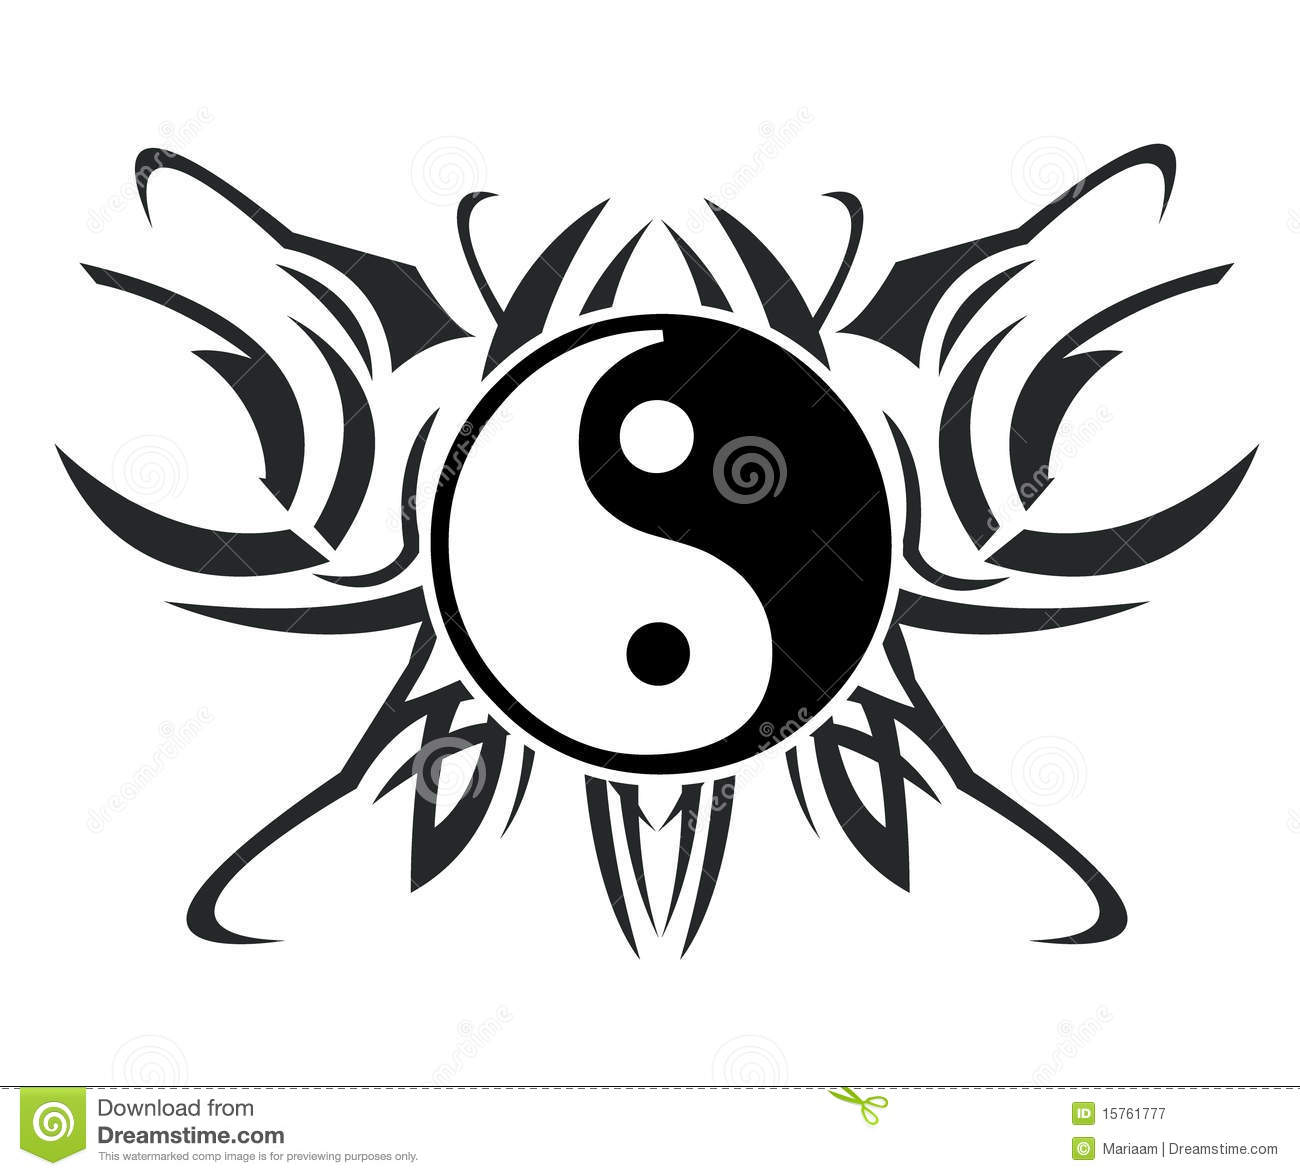 Yin Amp Yang Tatoegering Stock Illustratie Illustratie